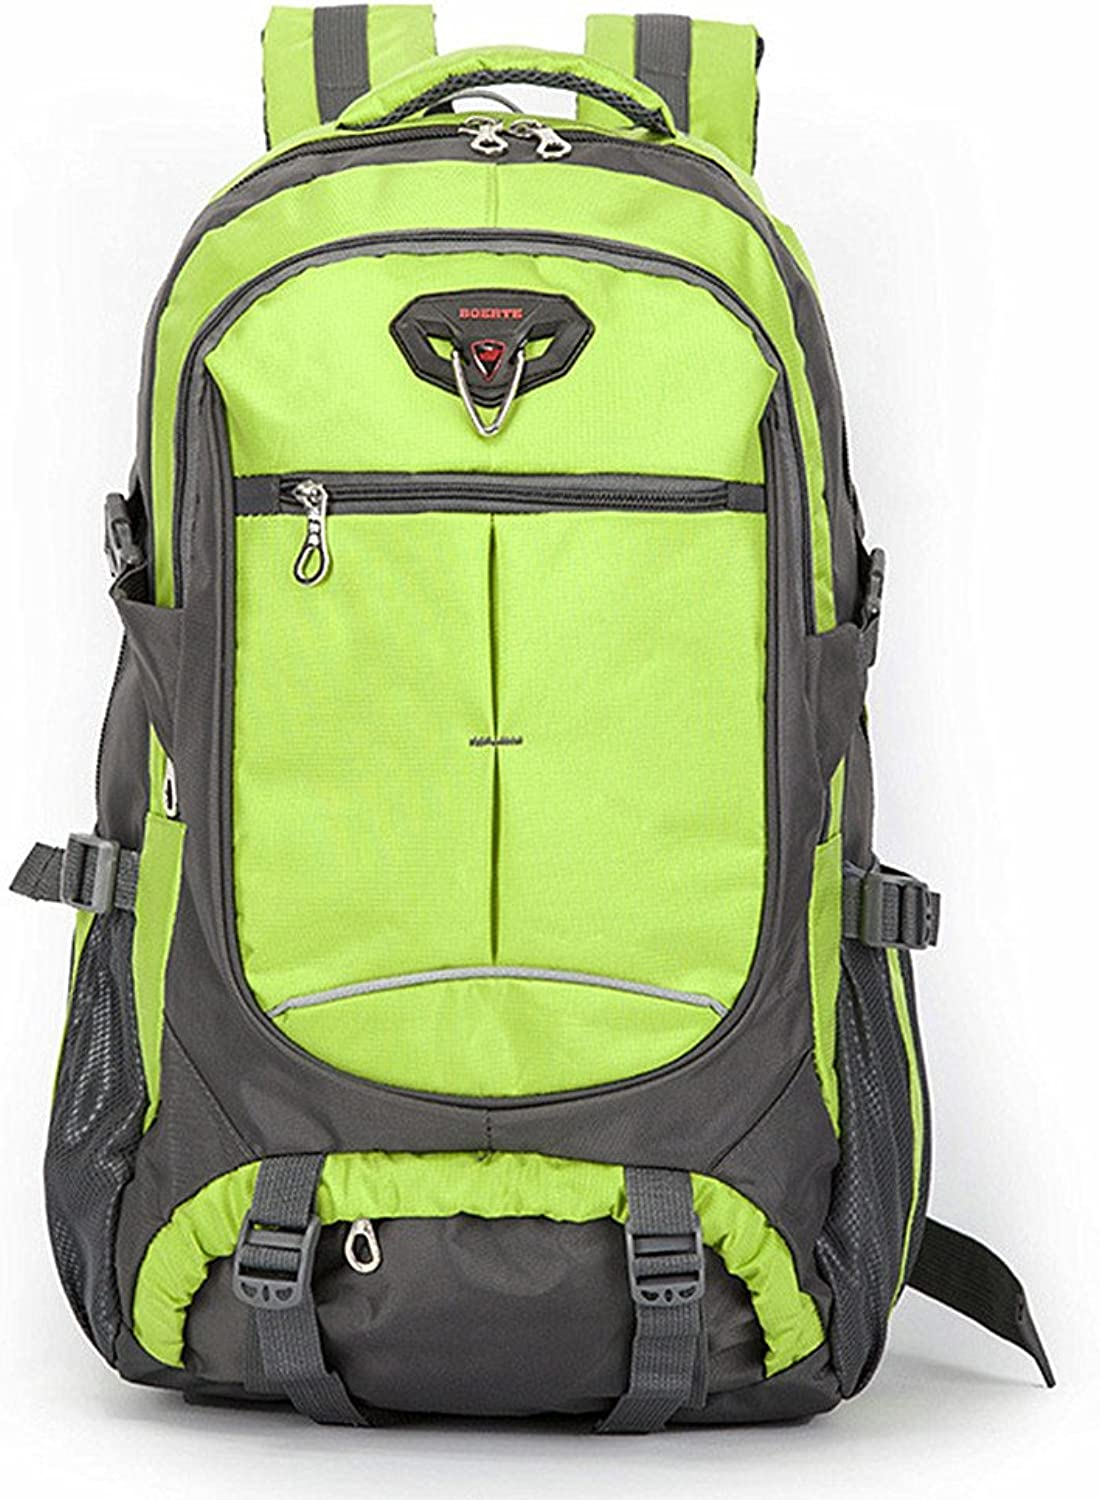 Backpacks Durable Wild Camping Travel by Walking Leisure Sport Neutral Men and Women Student Computer Bag Suitable Waterproof Mountaineering Bag (color   Green)